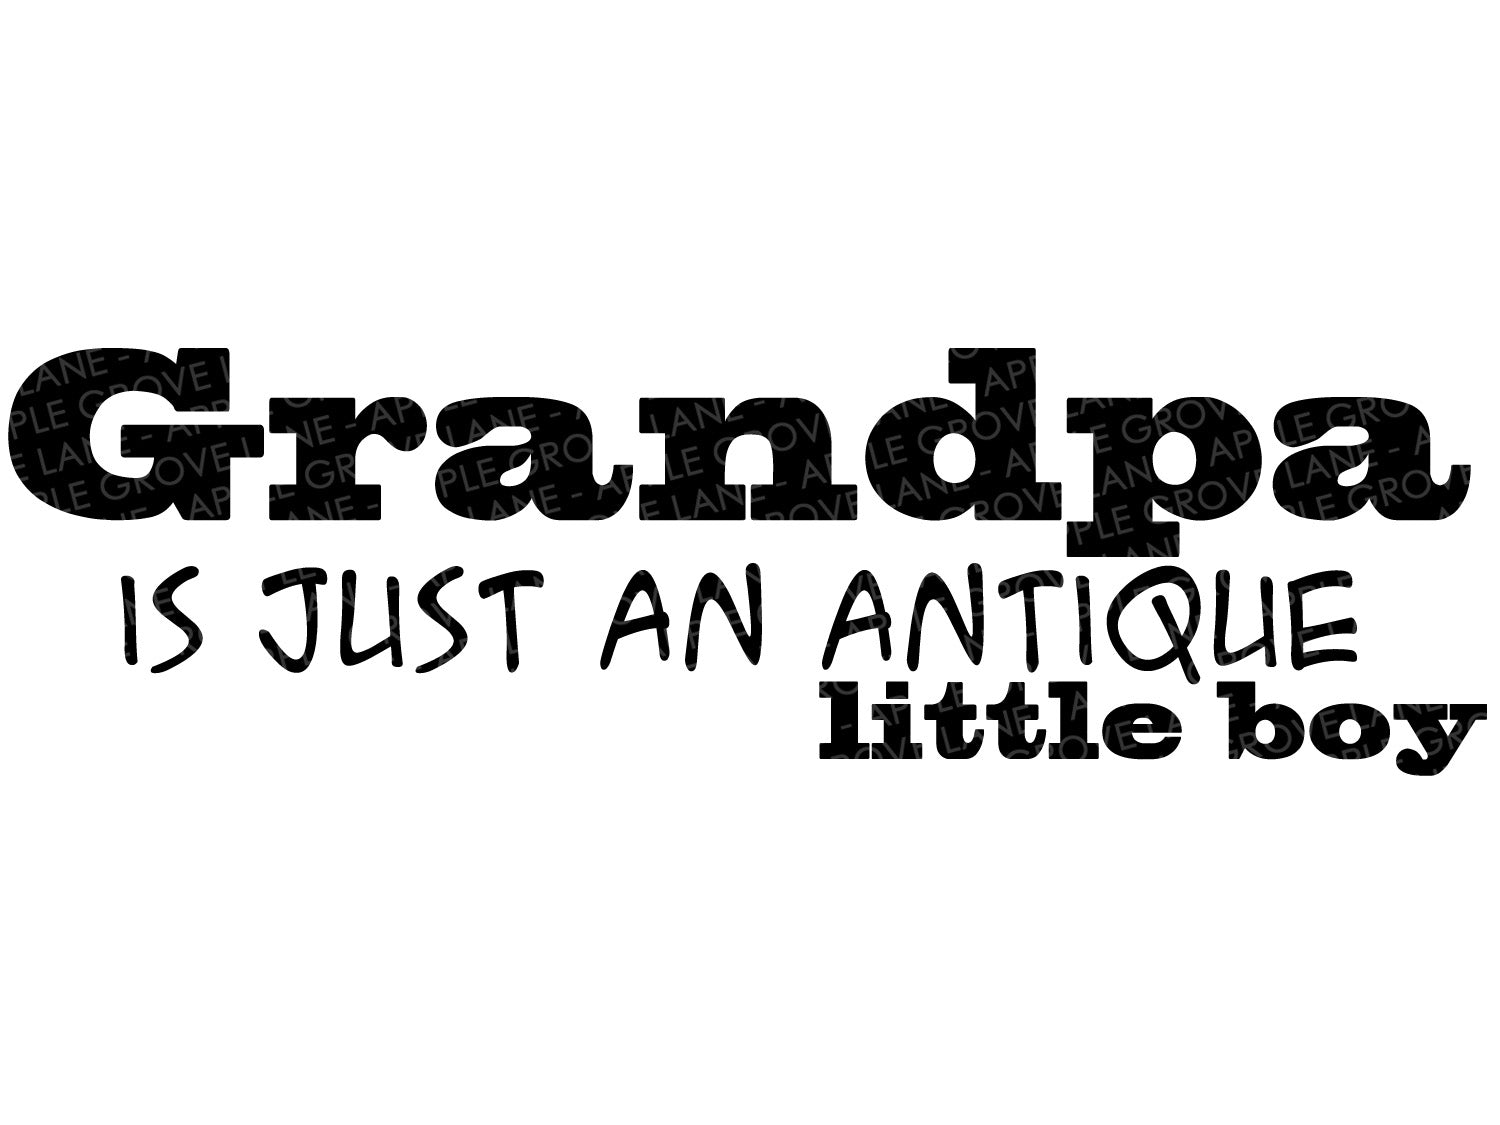 Grandfather Svg - Grandpa Svg - Grandpa Antique Boy Svg - Father's Day Svg - Fathers Day Gift - Gift for Grandpa - Svg Dxf Png Eps